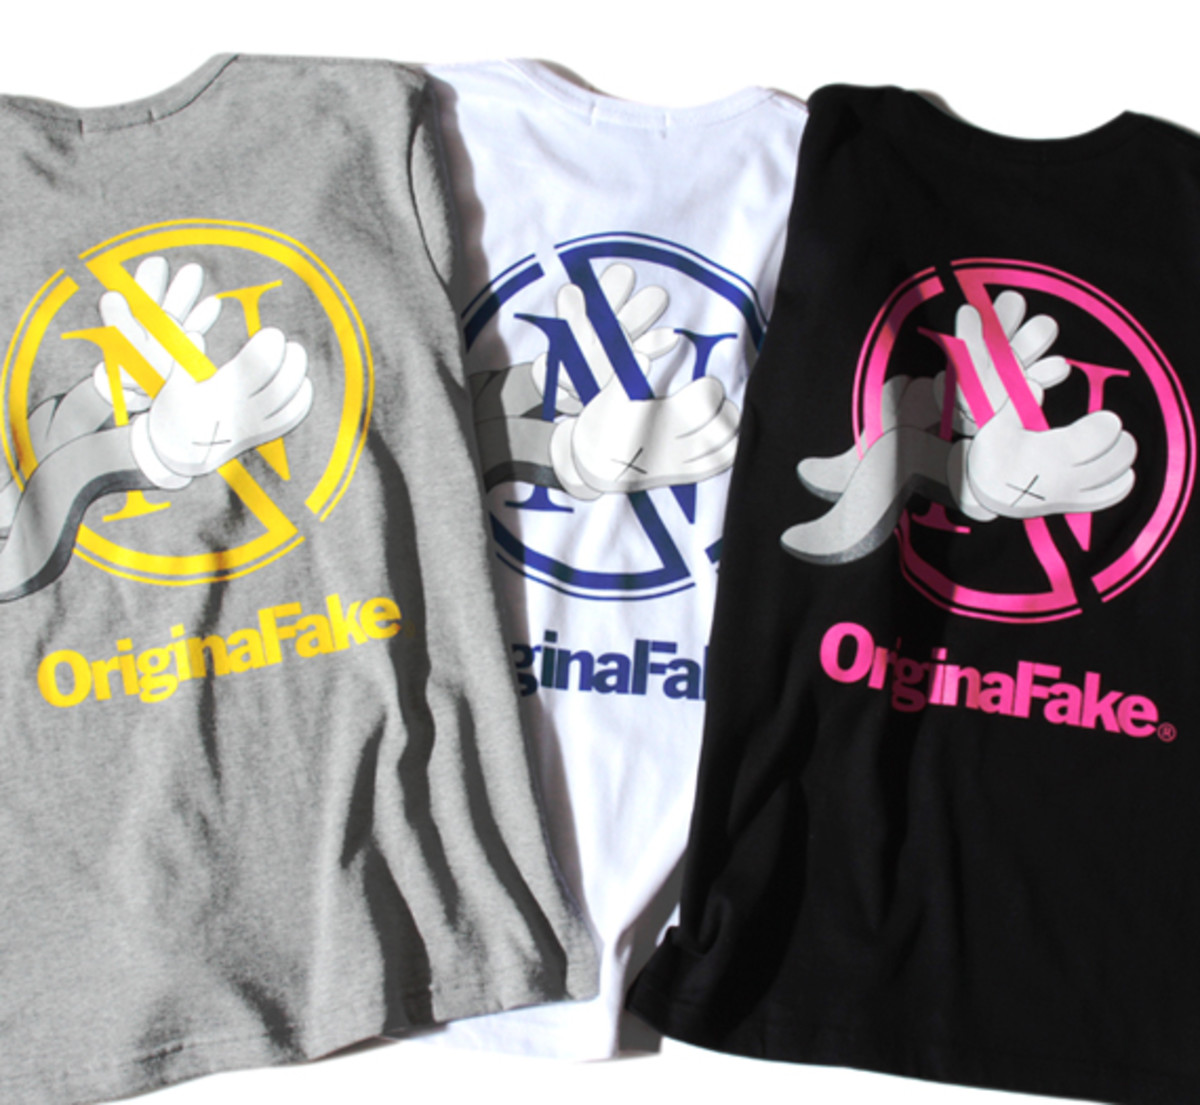 original-fake-invincible-round-3-tees-03